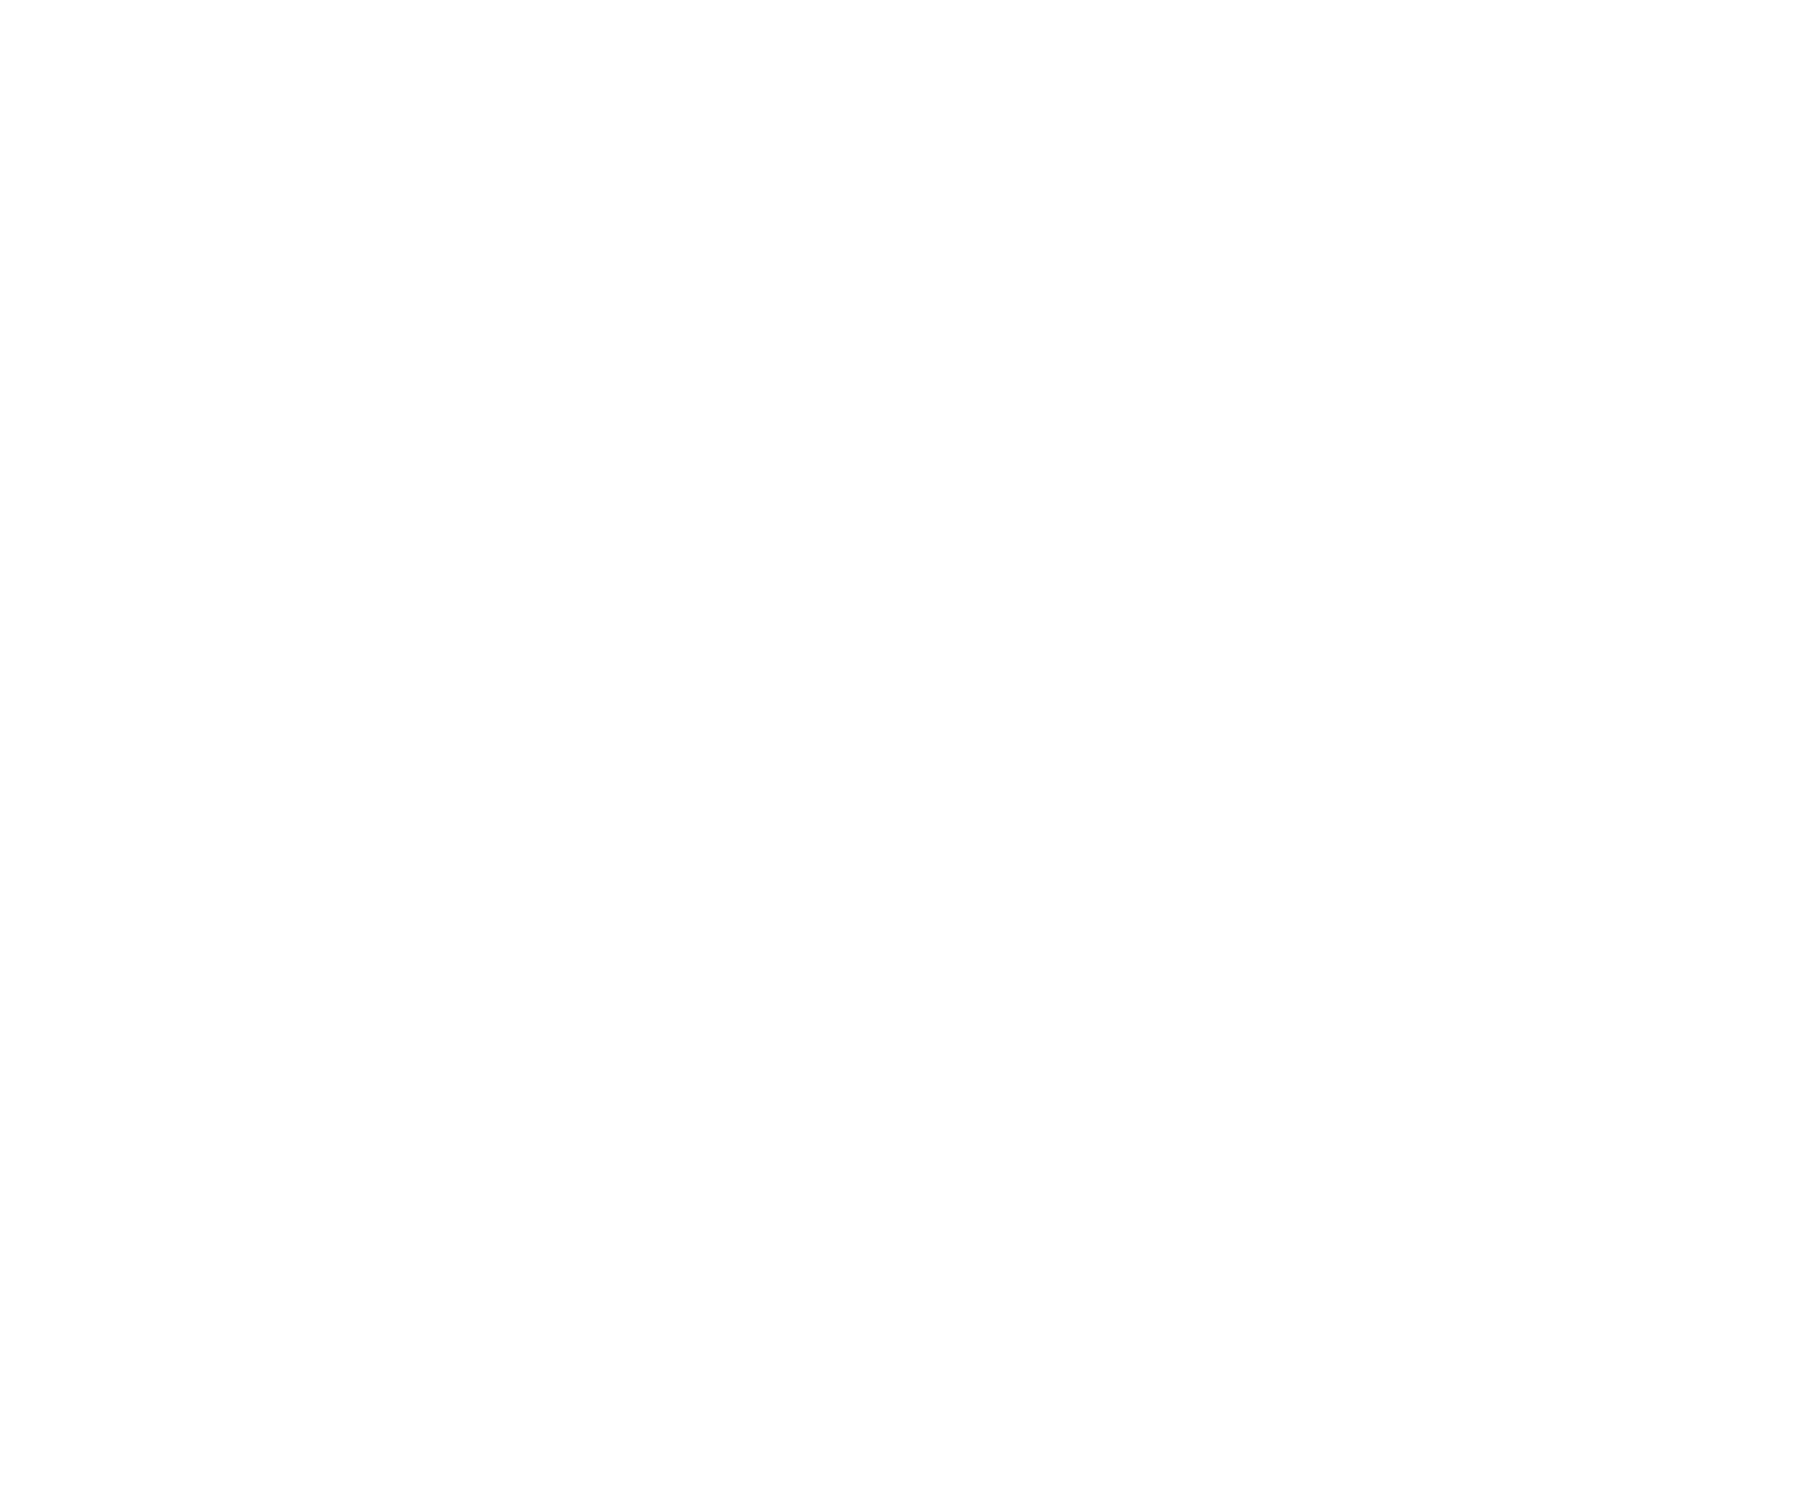 Droplet_White-01.png